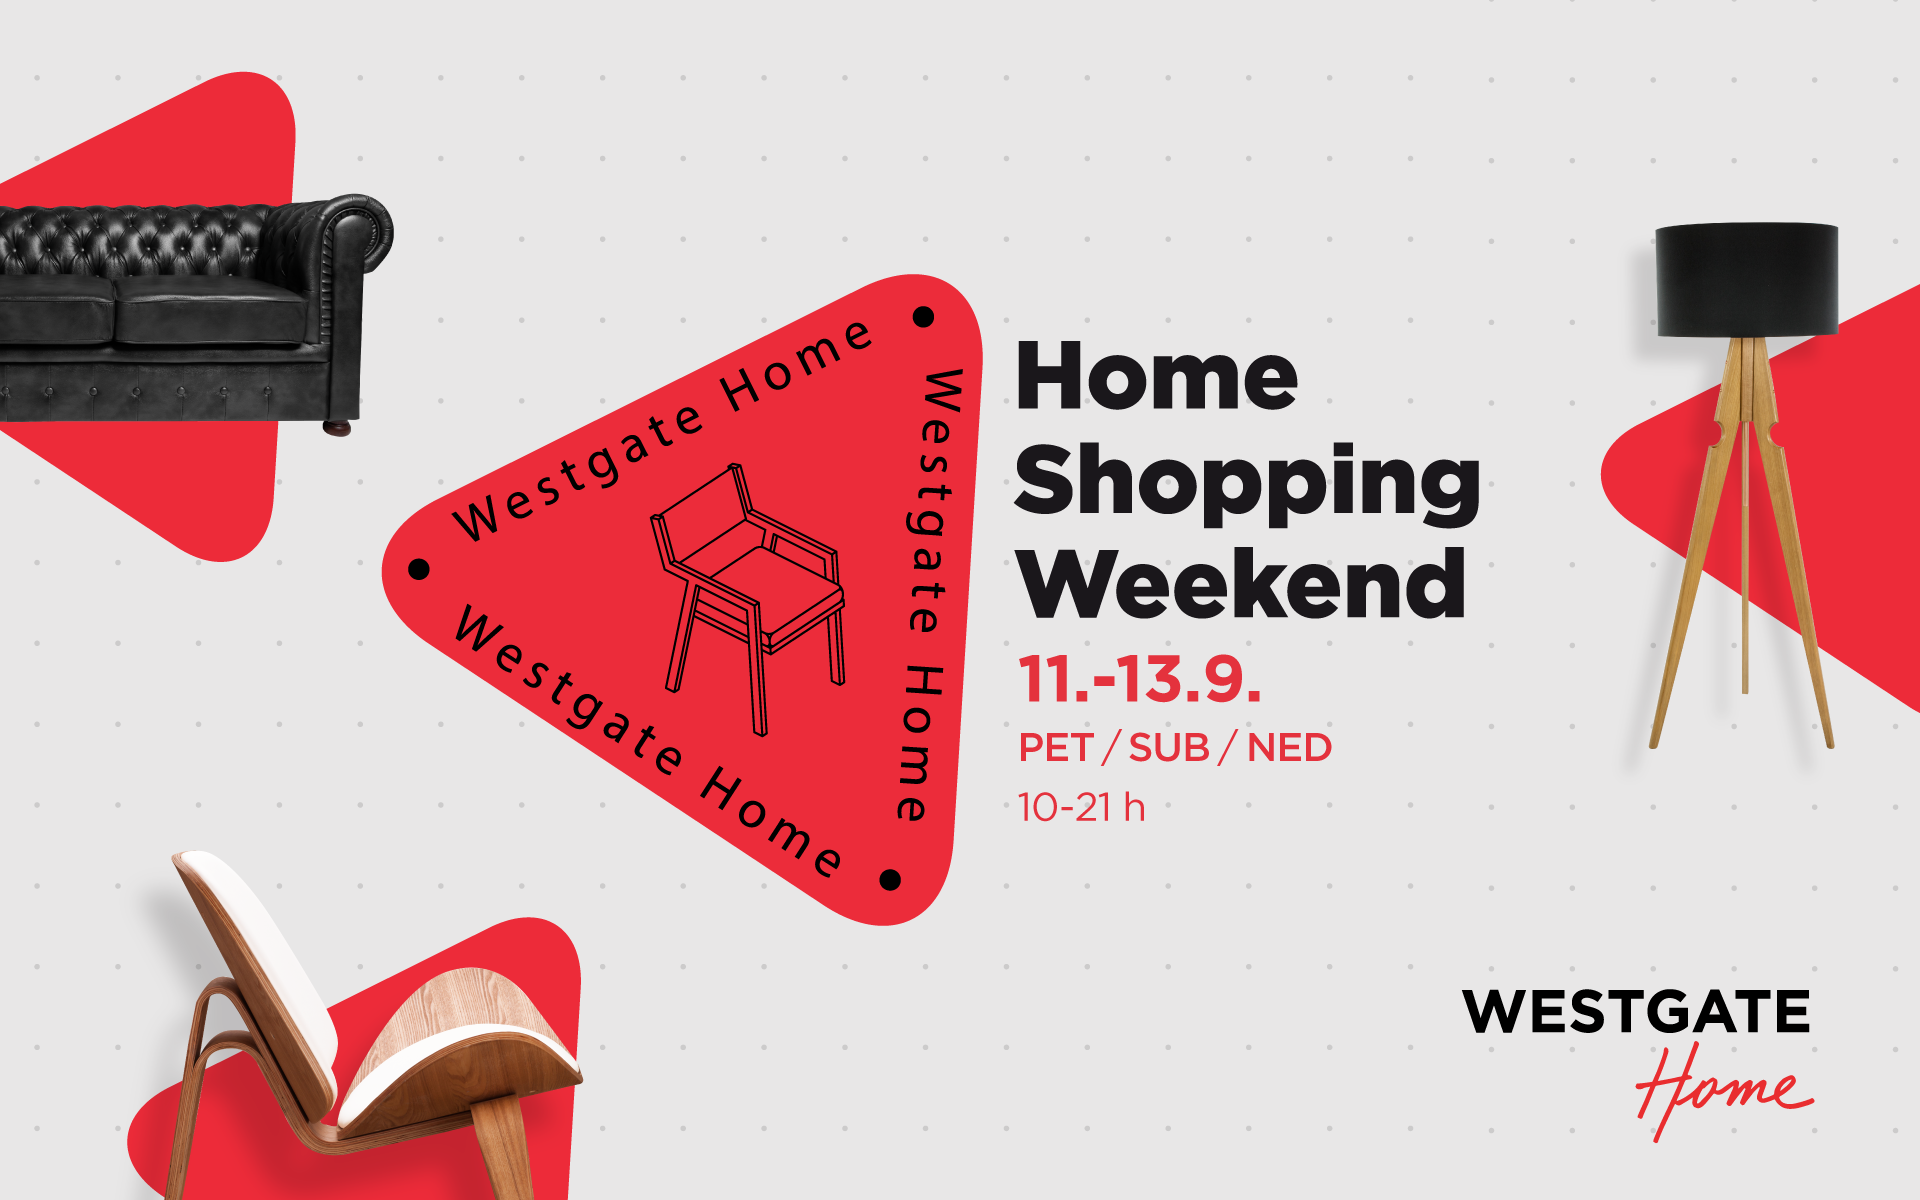 Home Shopping Weekend 11. - 13.9.